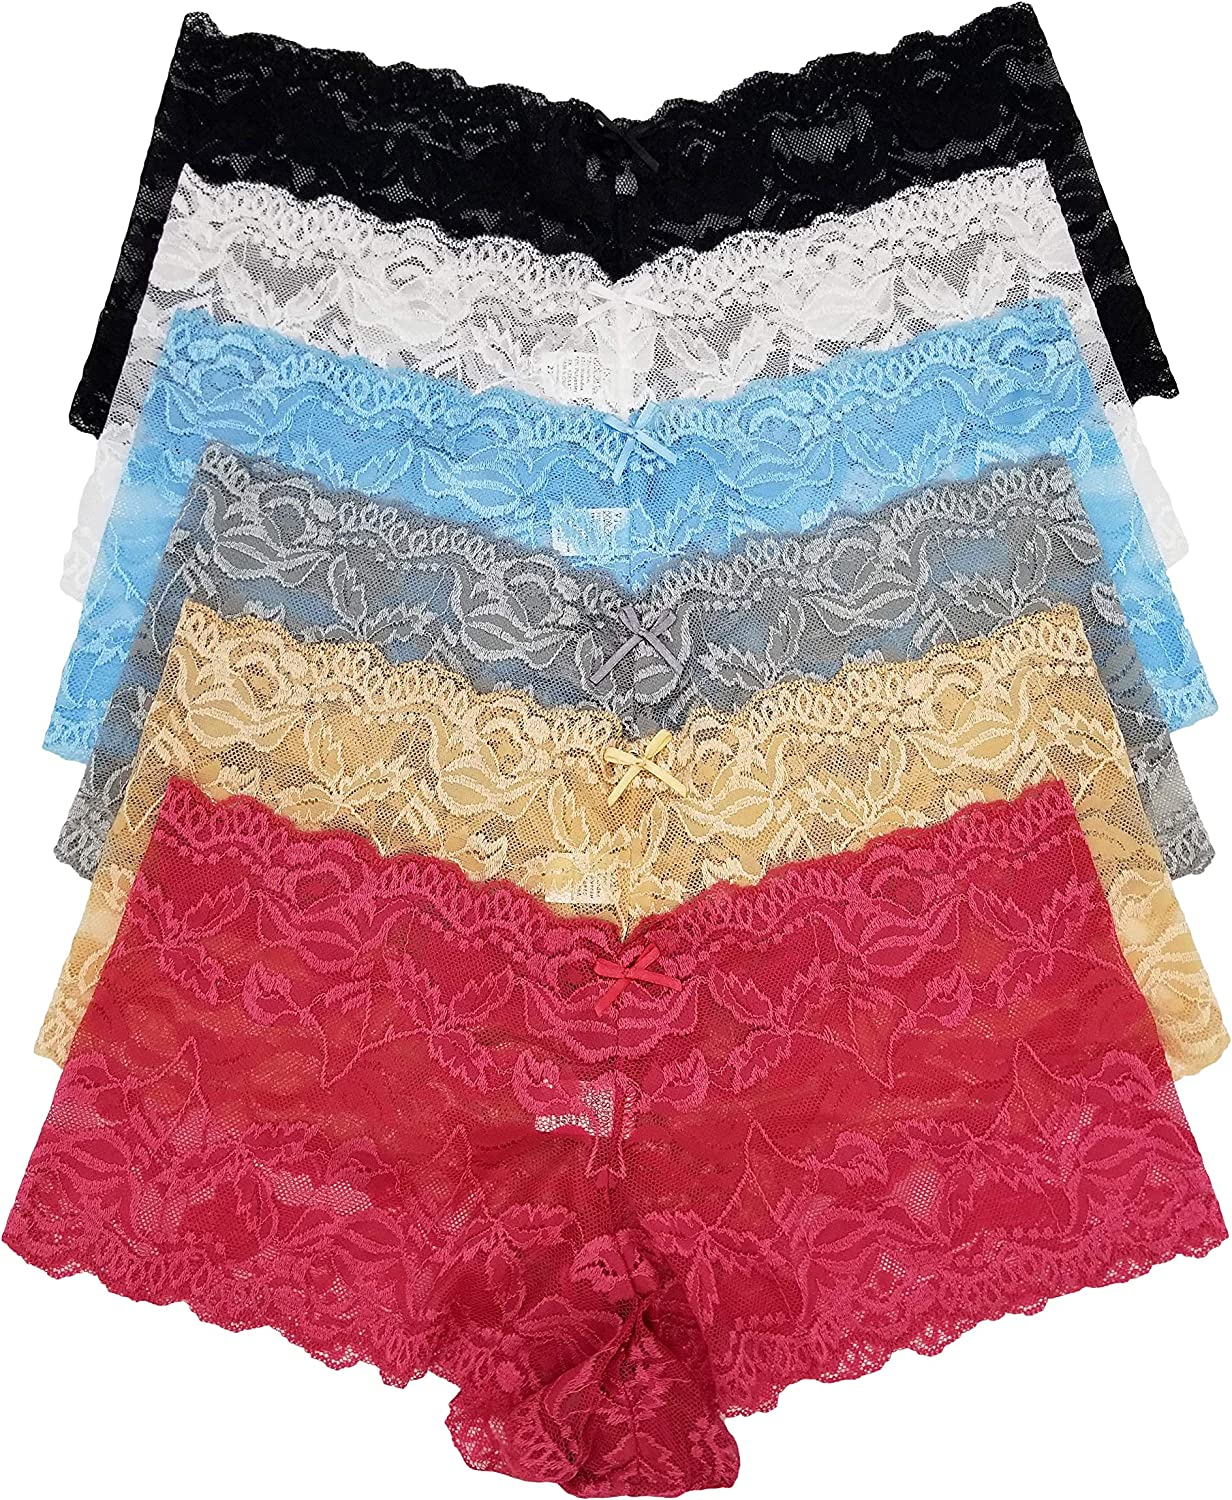 Vision Intimates 6 Pack of Sheer Floral Lace Boy Shorts Panties Plus Size 896P